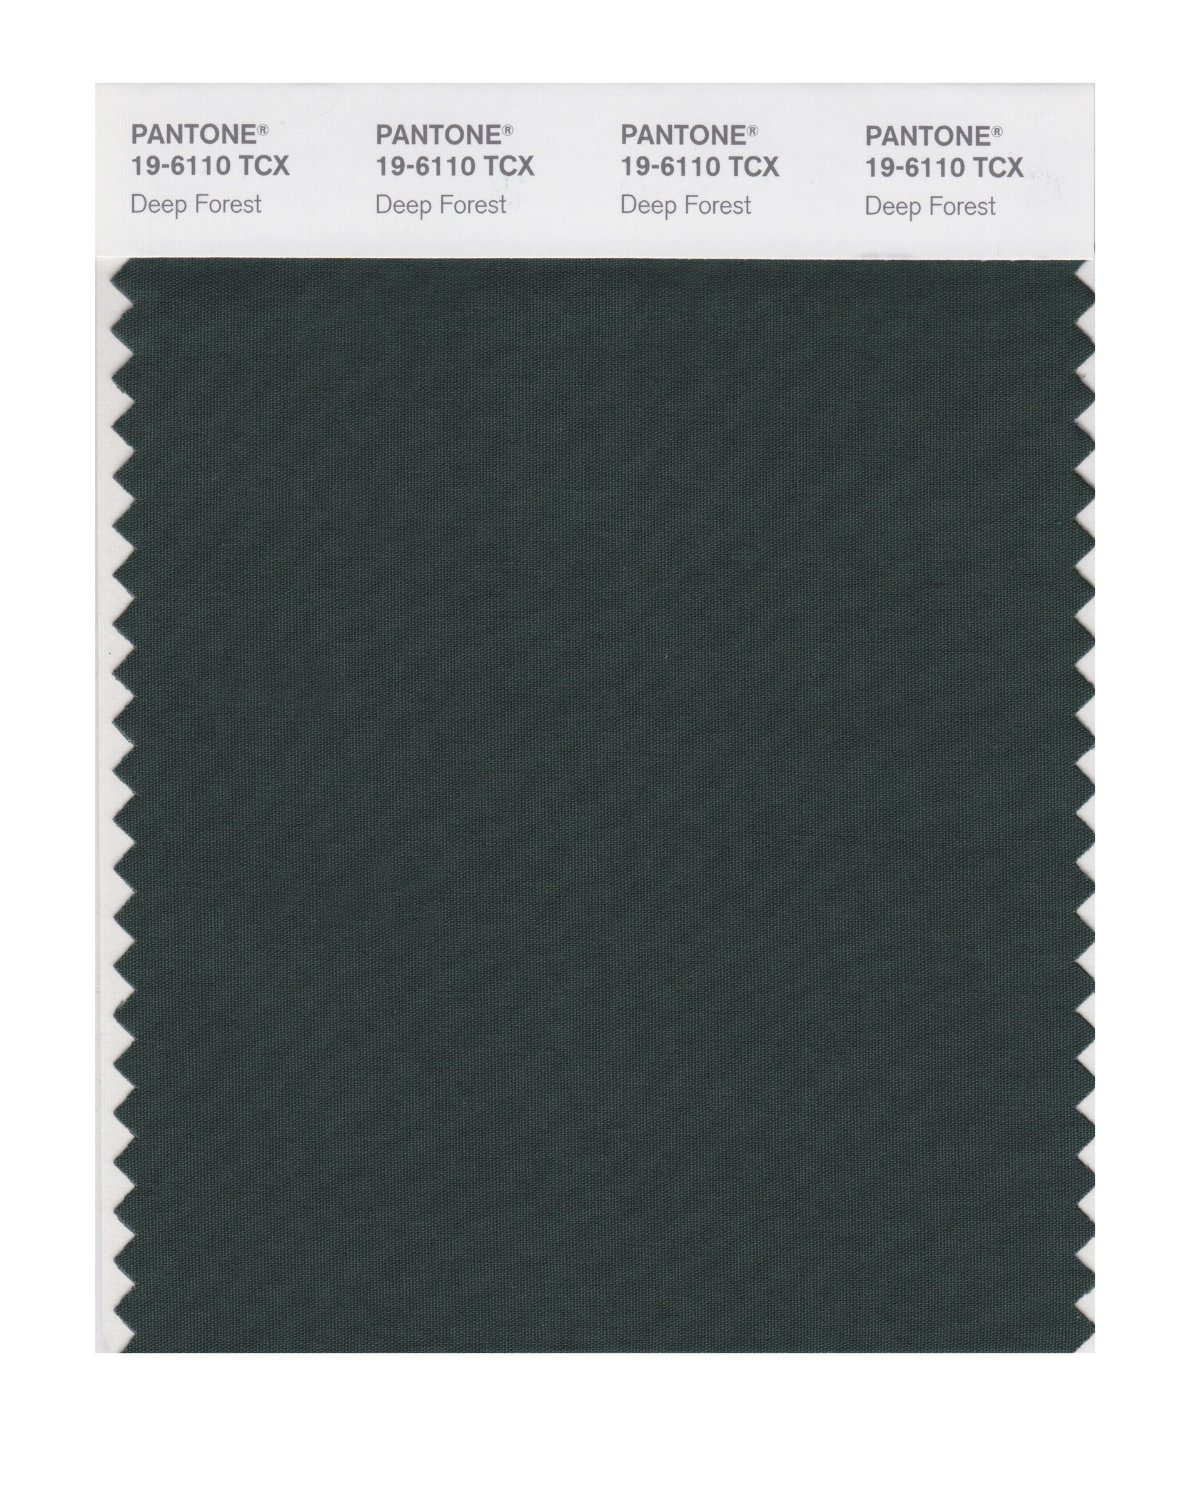 Pantone Smart Swatch 19-6110 Deep Forest